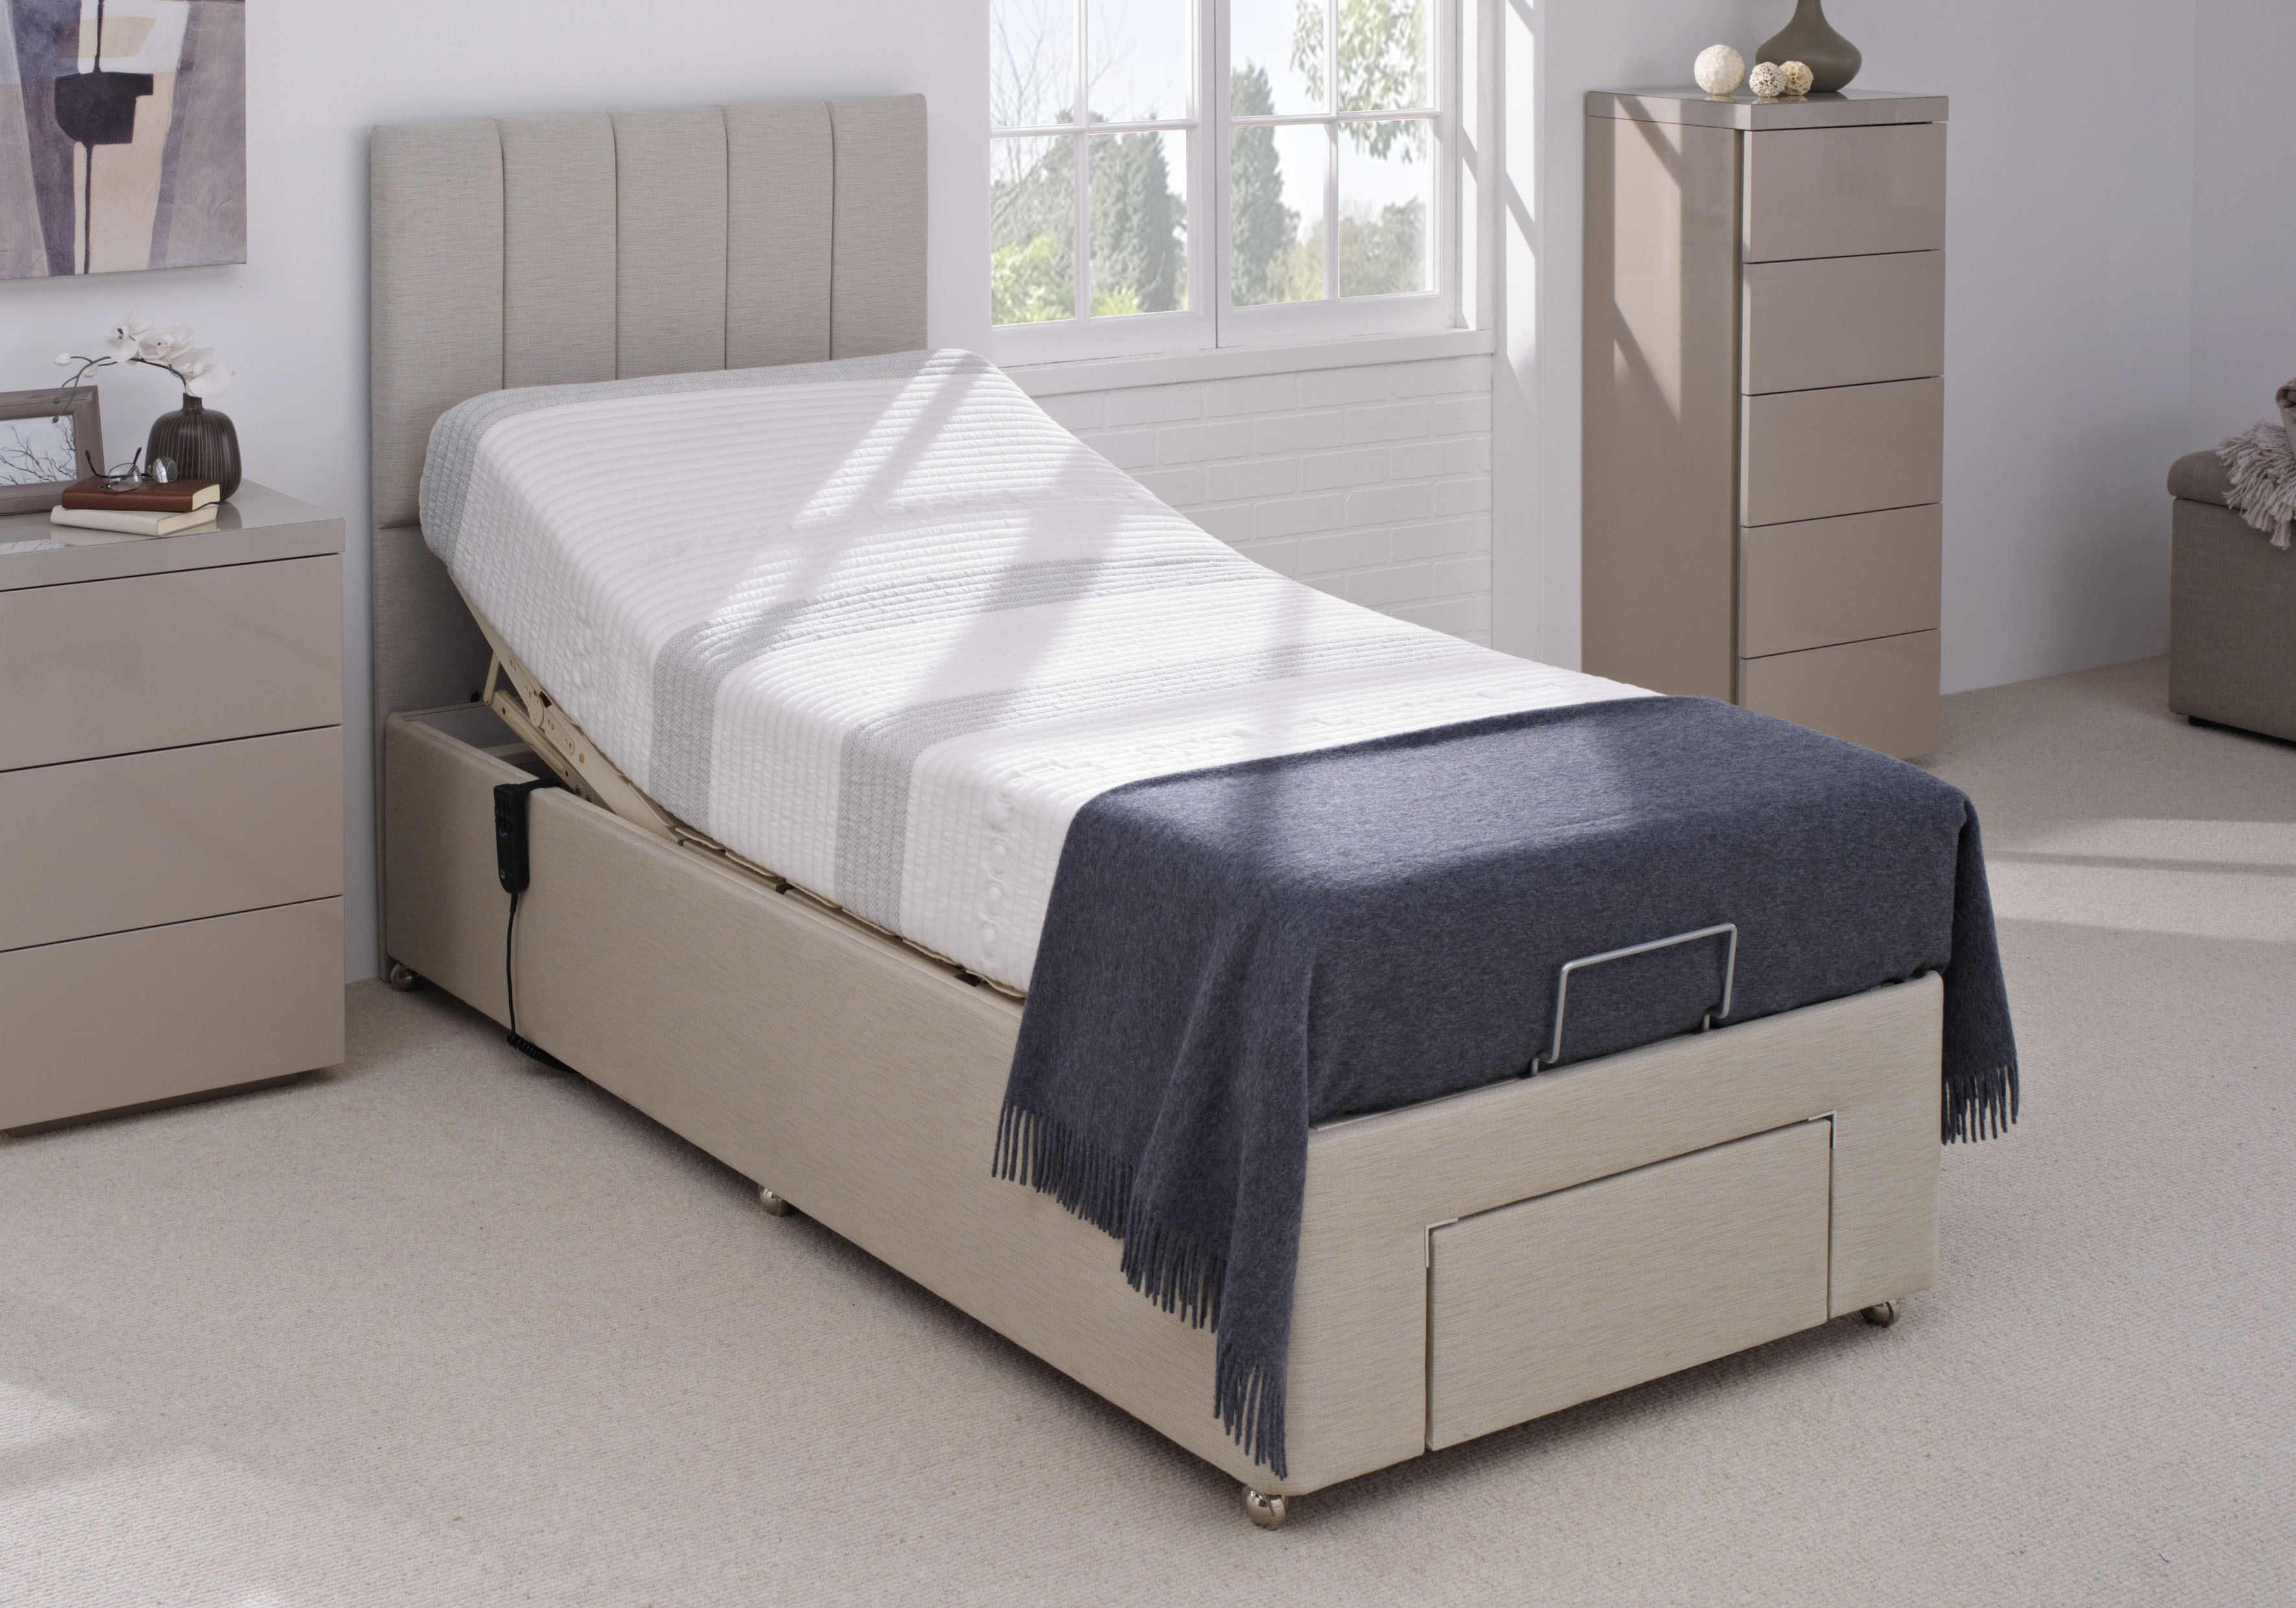 Electric Beds Ni : Mibed cool gel electric adjustable bed